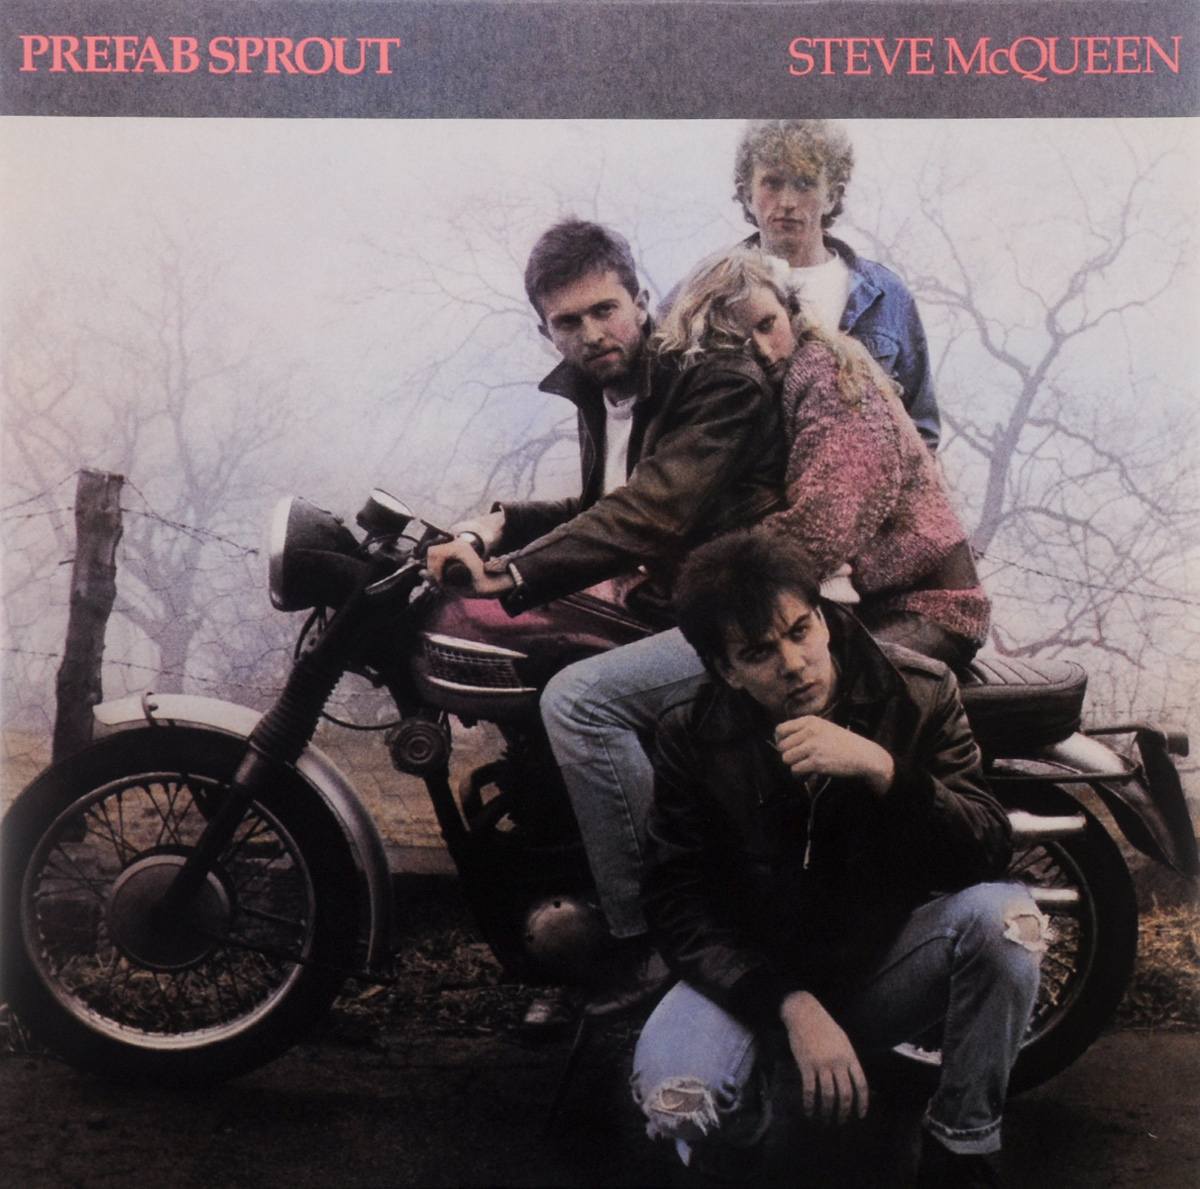 Prefab Sprout Prefab Sprout. Steve McQueen prefab sprout prefab sprout steve mcqueen